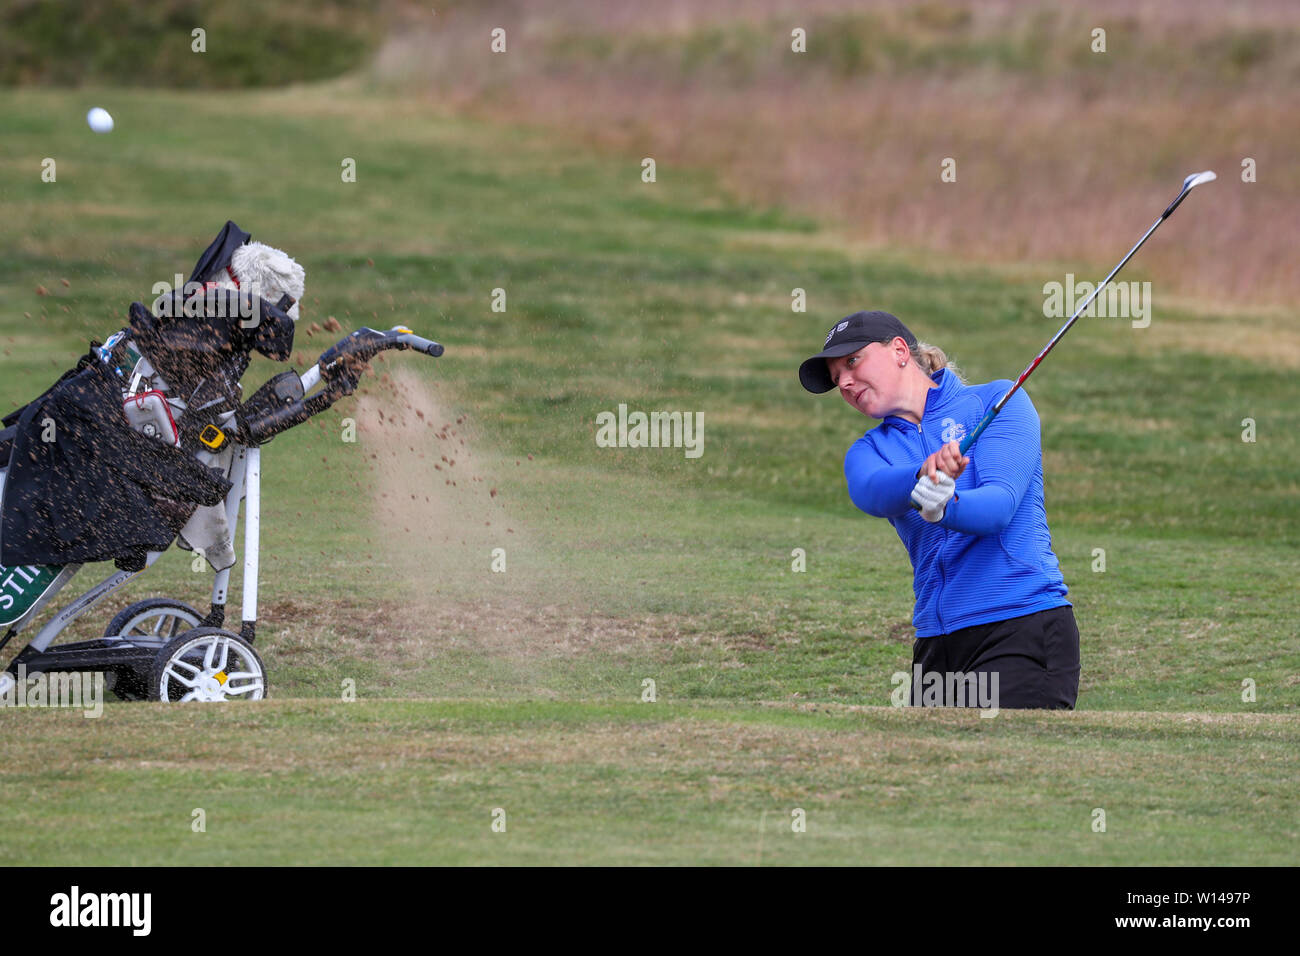 Troon, Scotland, UK. 30th June 2019. On the final day of the Competition the remaining 8 golfers, playing matchplay golf competed over Barassie Links Golf course, Troon in blustery wind and squally rain conditions to try and win the Championship Cup and the Clark Rosebowl. CHLOE GOADBY representing St Regulus Ladies Golf Club playing out the greenside bunker at the 16th Credit: Findlay/Alamy Live News - Stock Image